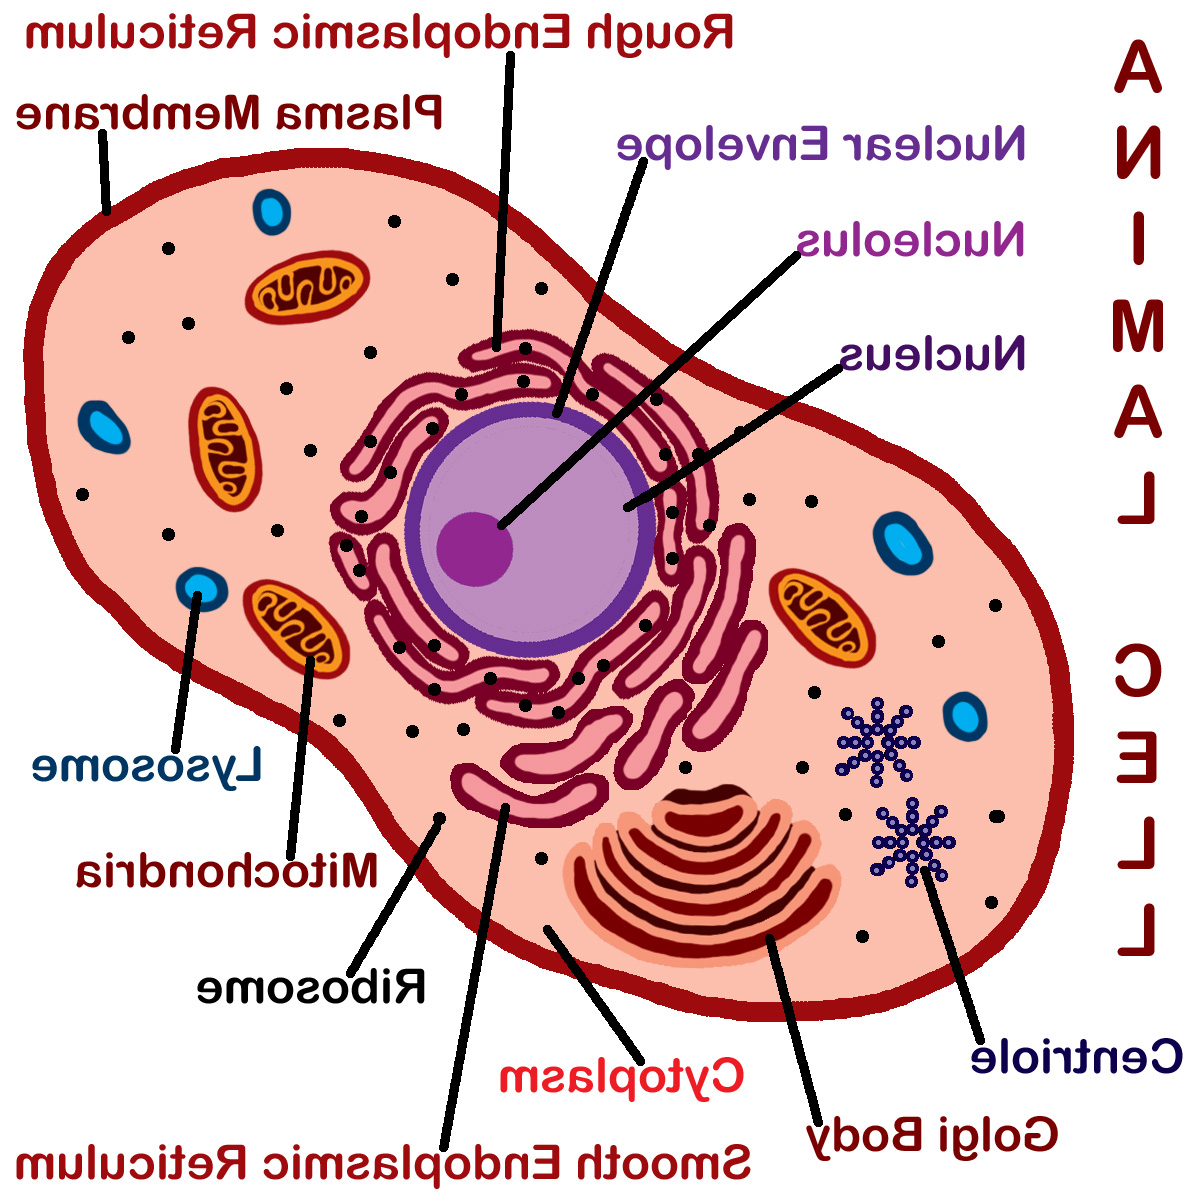 Diagram Technology Templates And Examples Part 2 Filesimple Of Animal Cell Ensvg Wikimedia Commons Drawing At Getdrawings Com Free For Personal Use